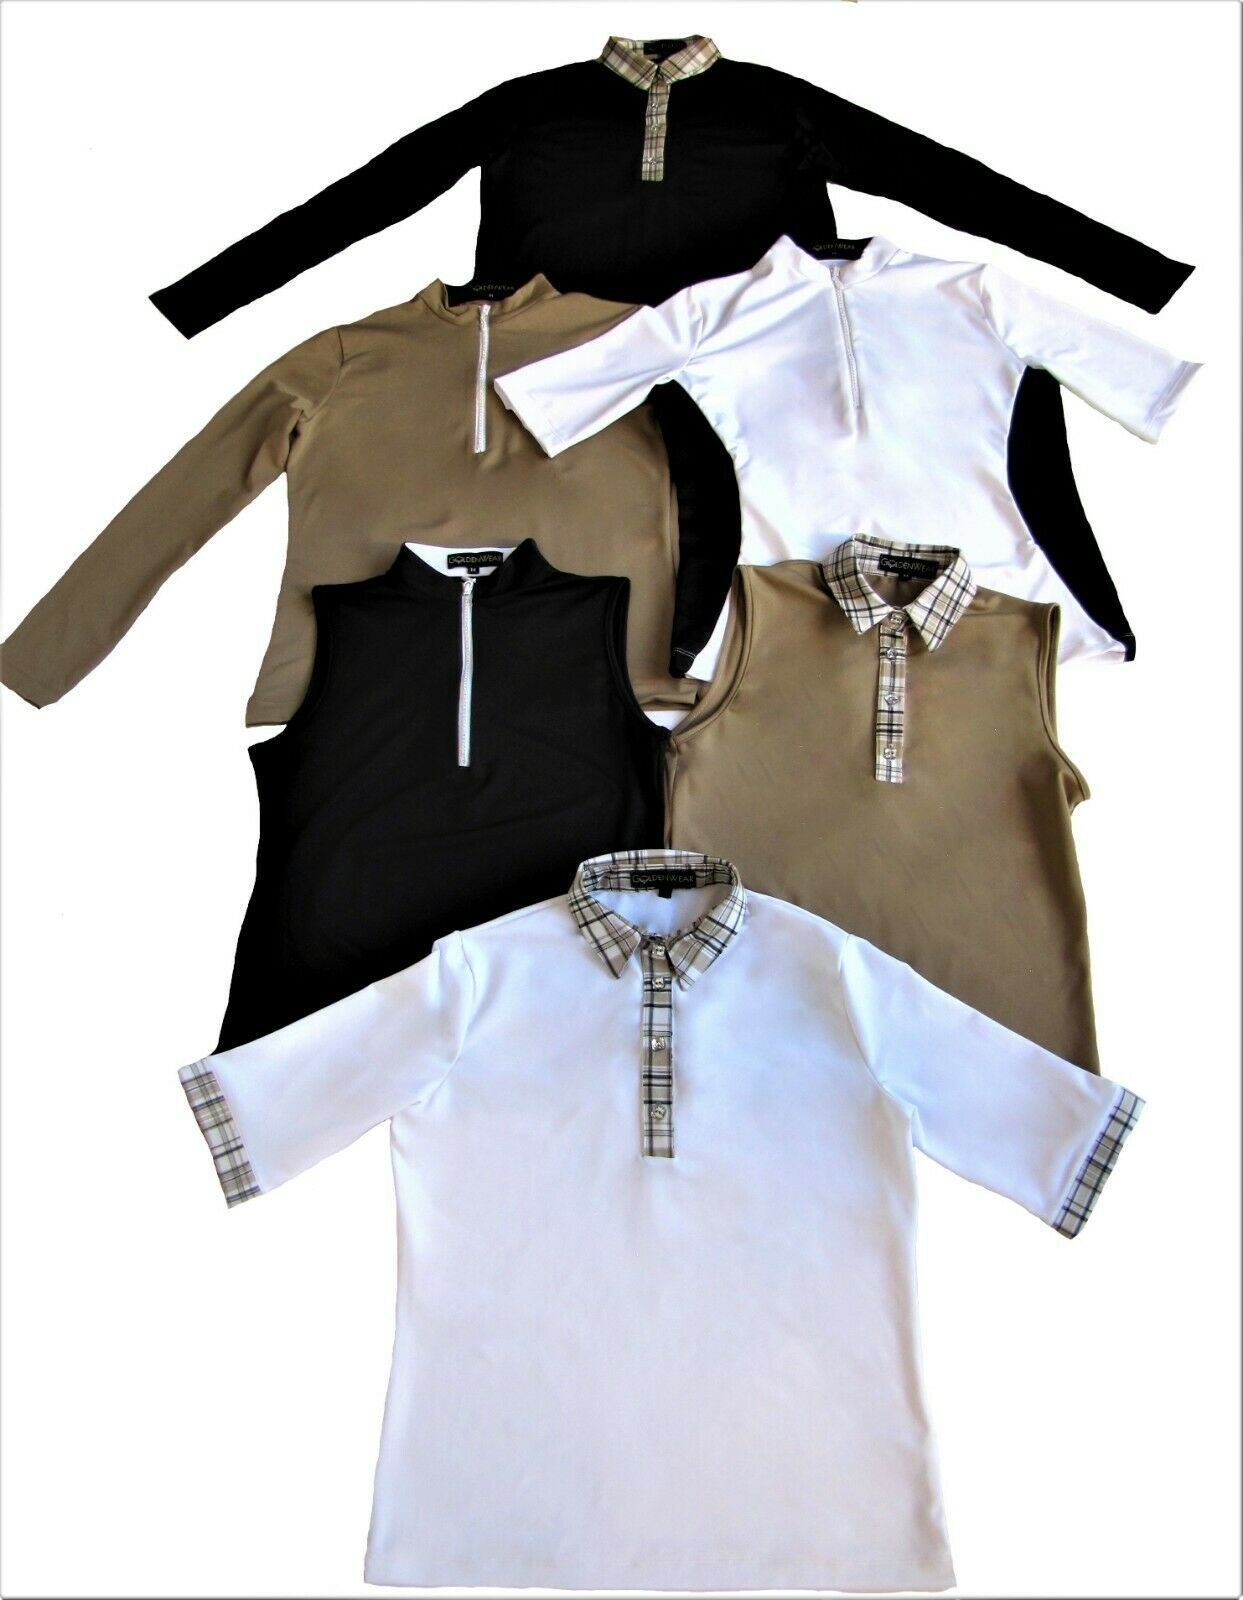 GOLF & CASUAL TAN LONG SLEEVE TOP WITH ZIPPER NECK  - NEW - GOLDENWEAR image 2